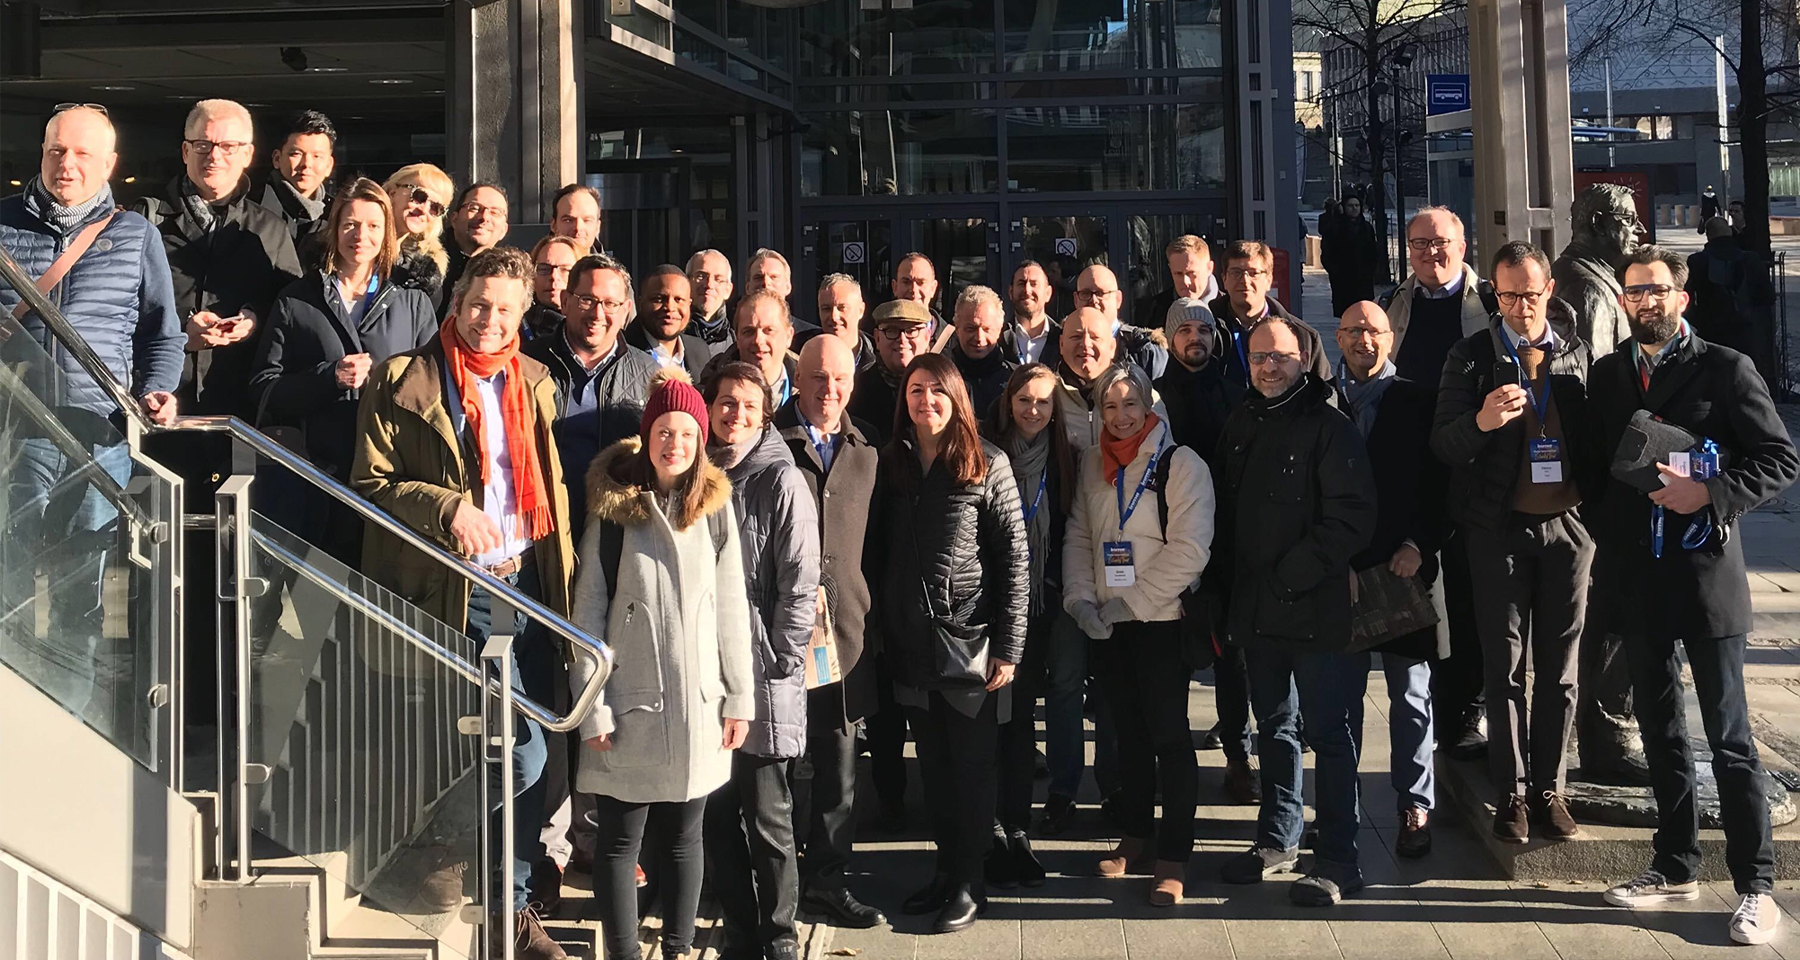 INMA Oslo study tour focuses on digital-, reader-first newsroom culture